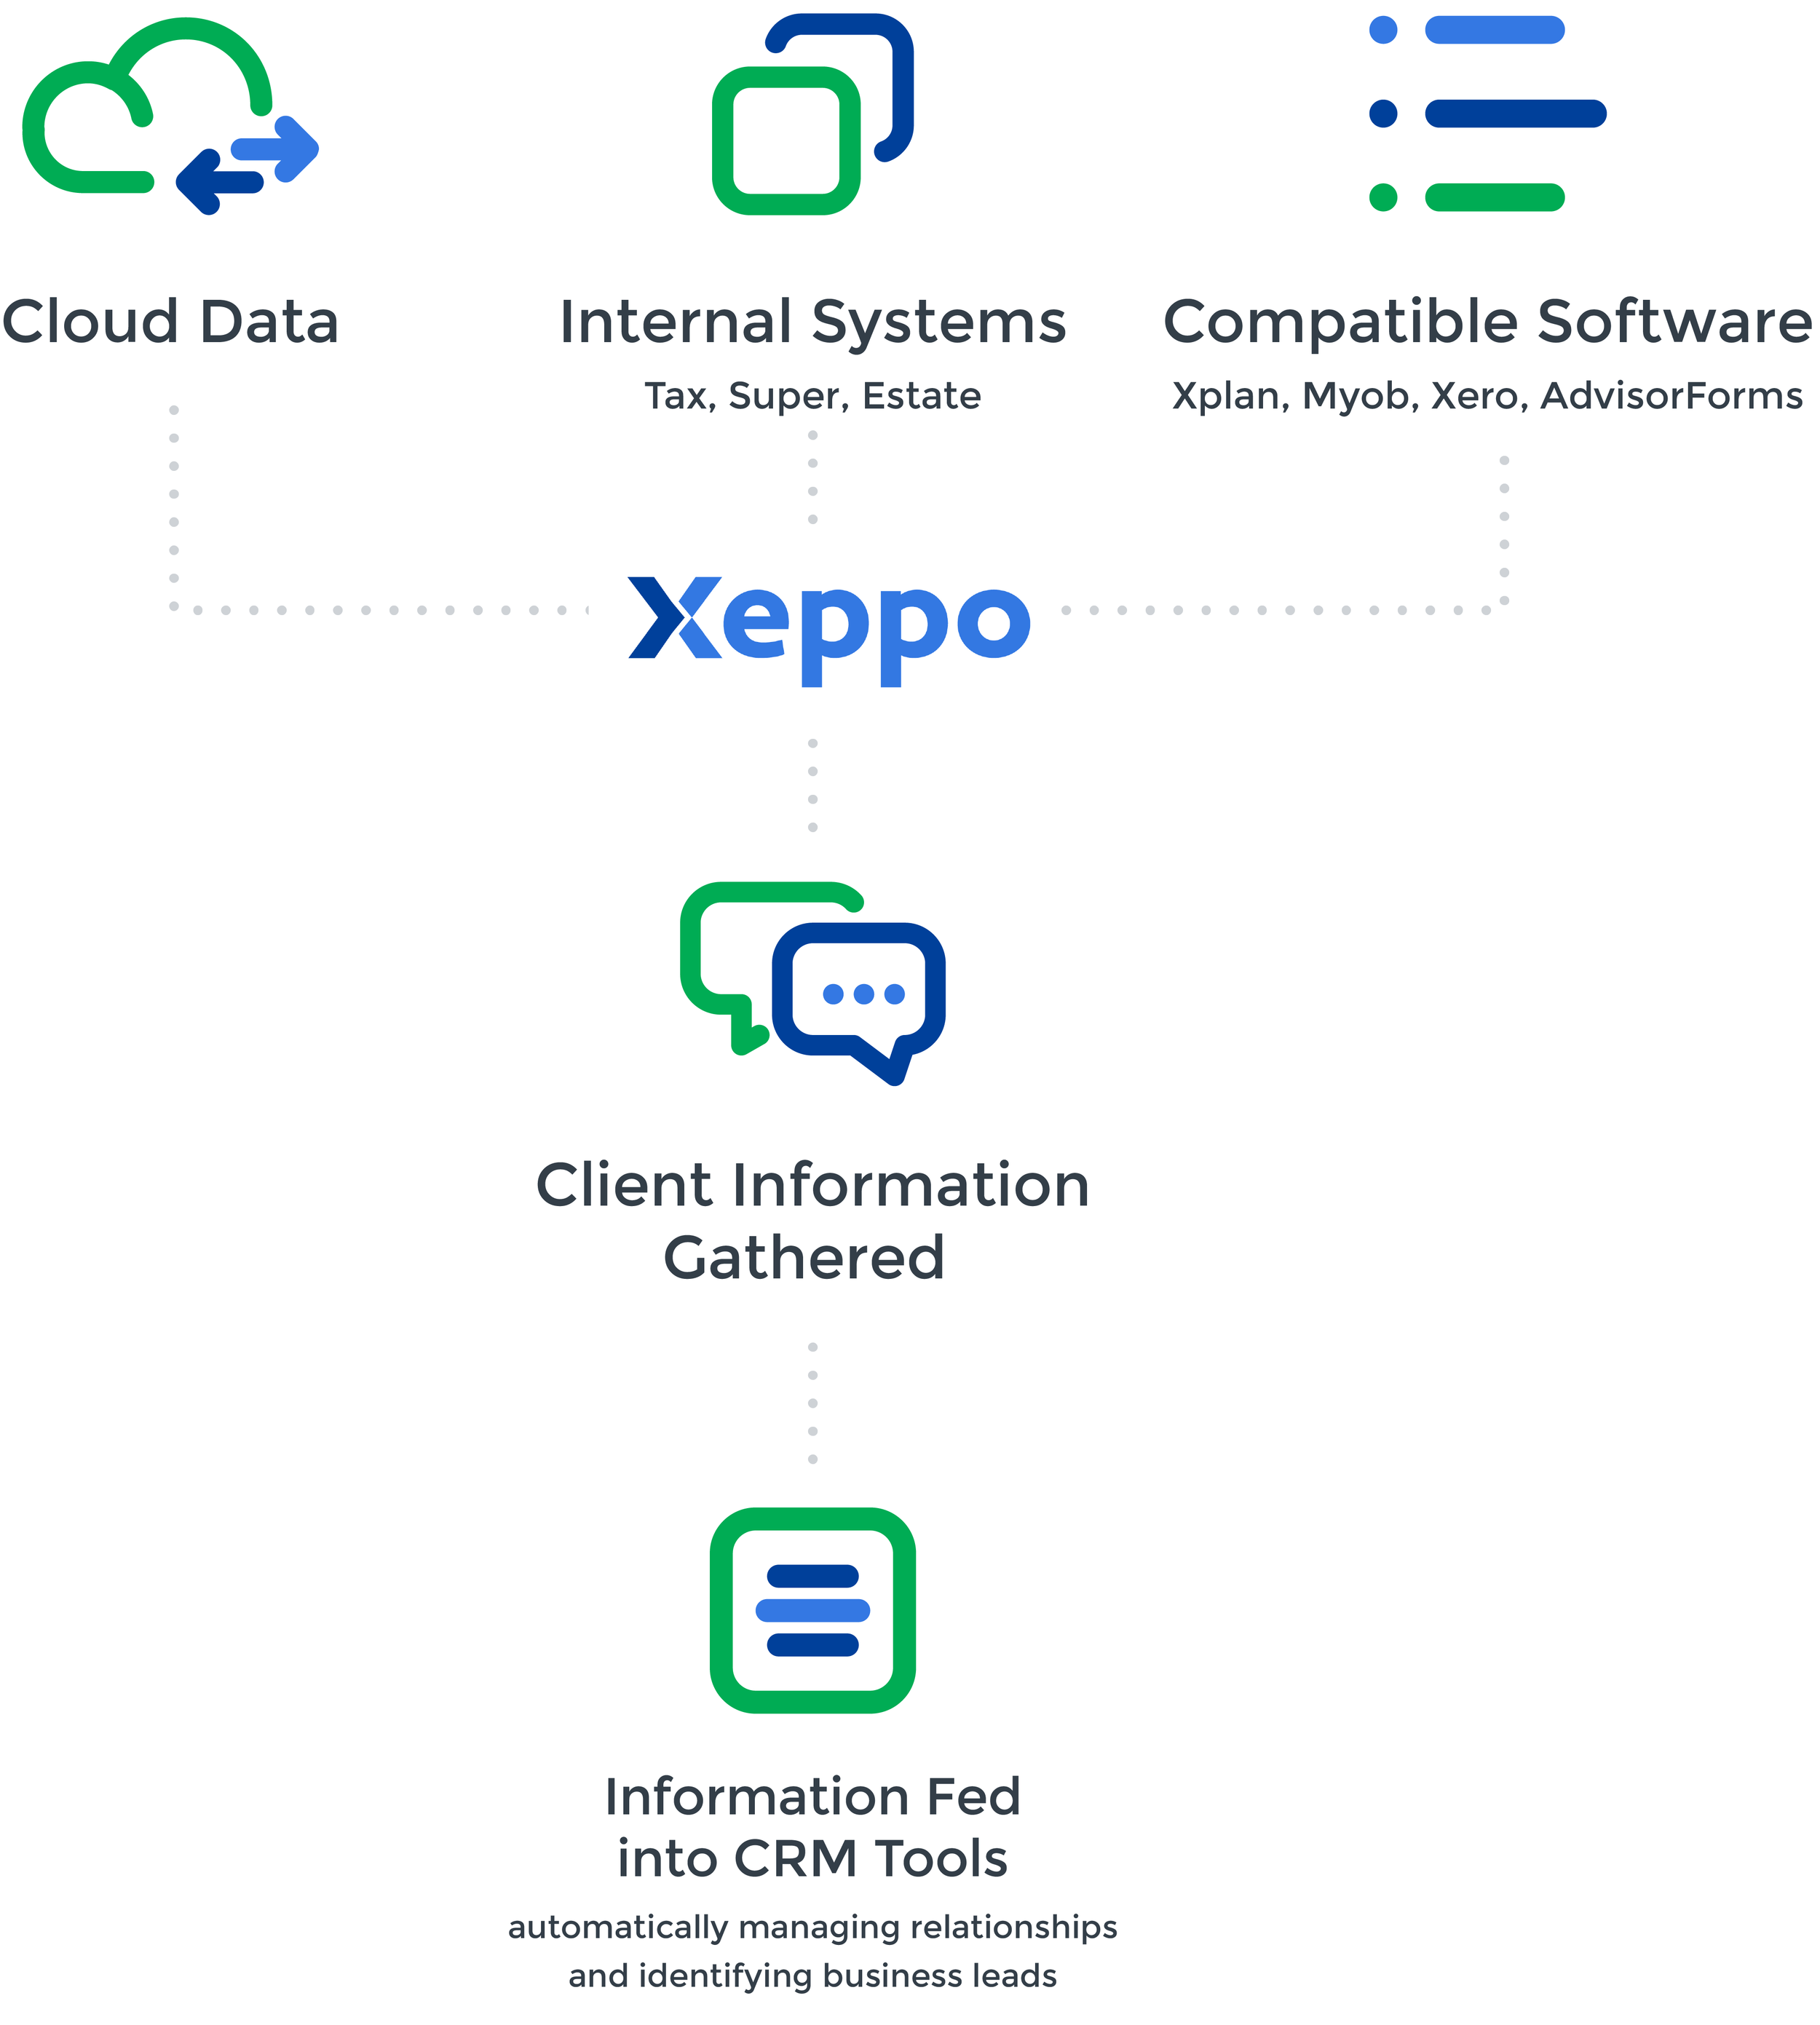 xeppo-diagram-01.png